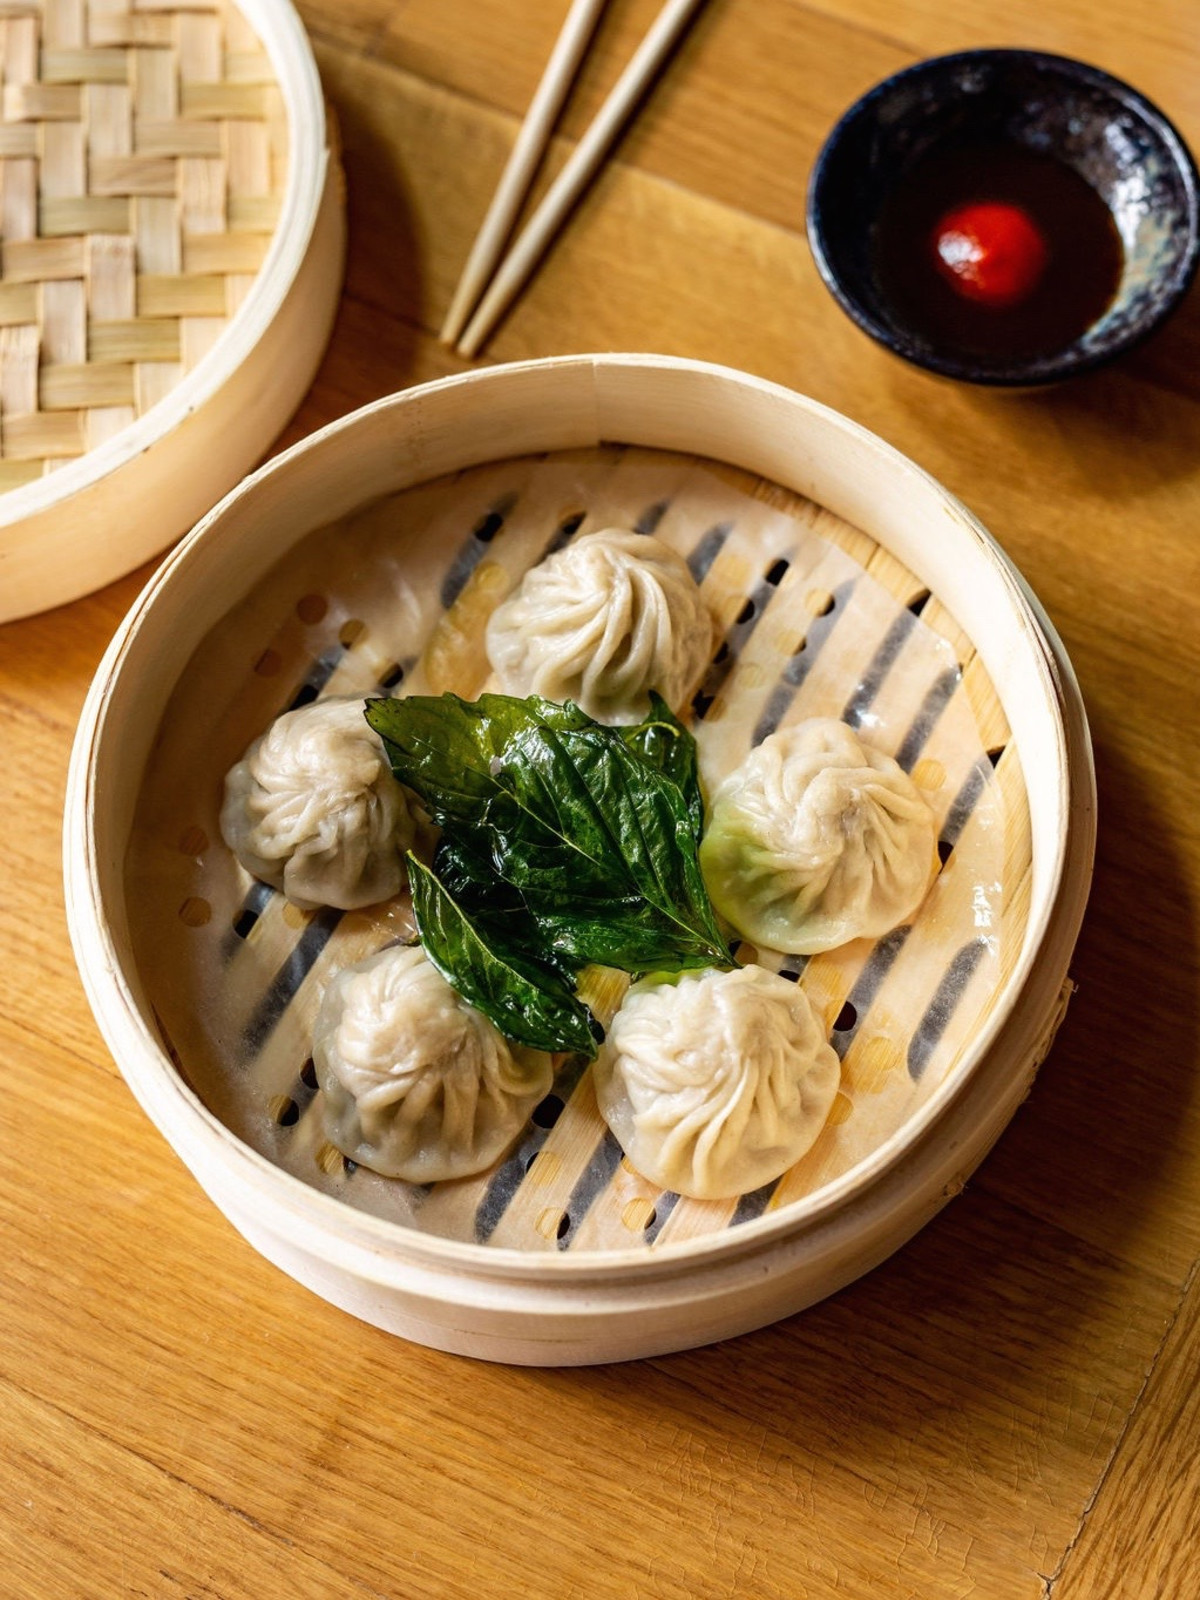 Traveler's Table pho soup dumplings